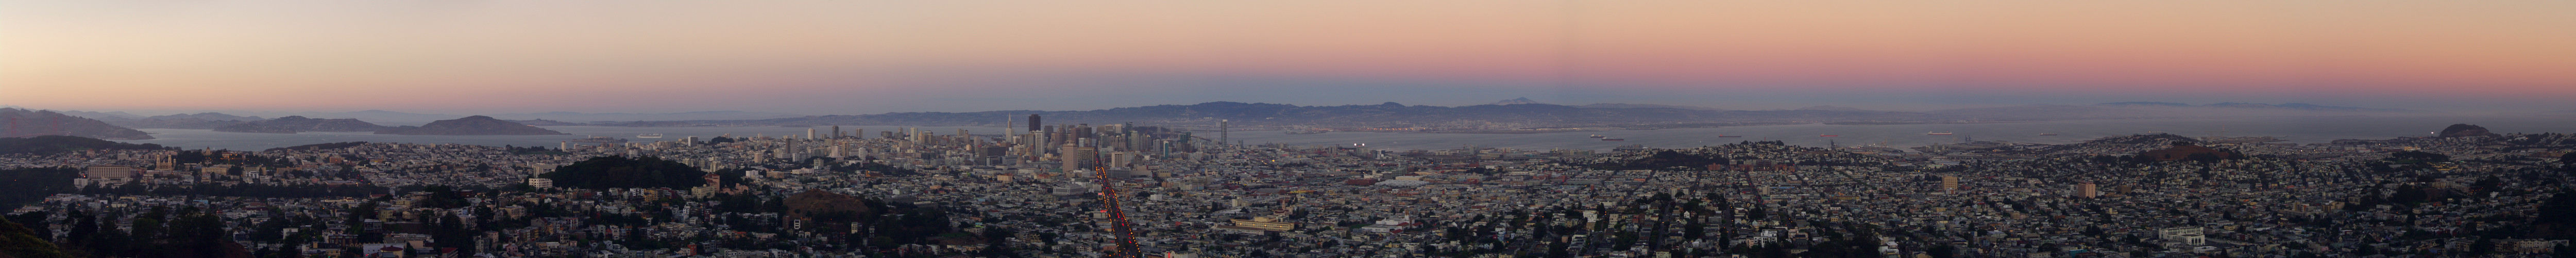 Twilight panorama of San Francisco from Tw